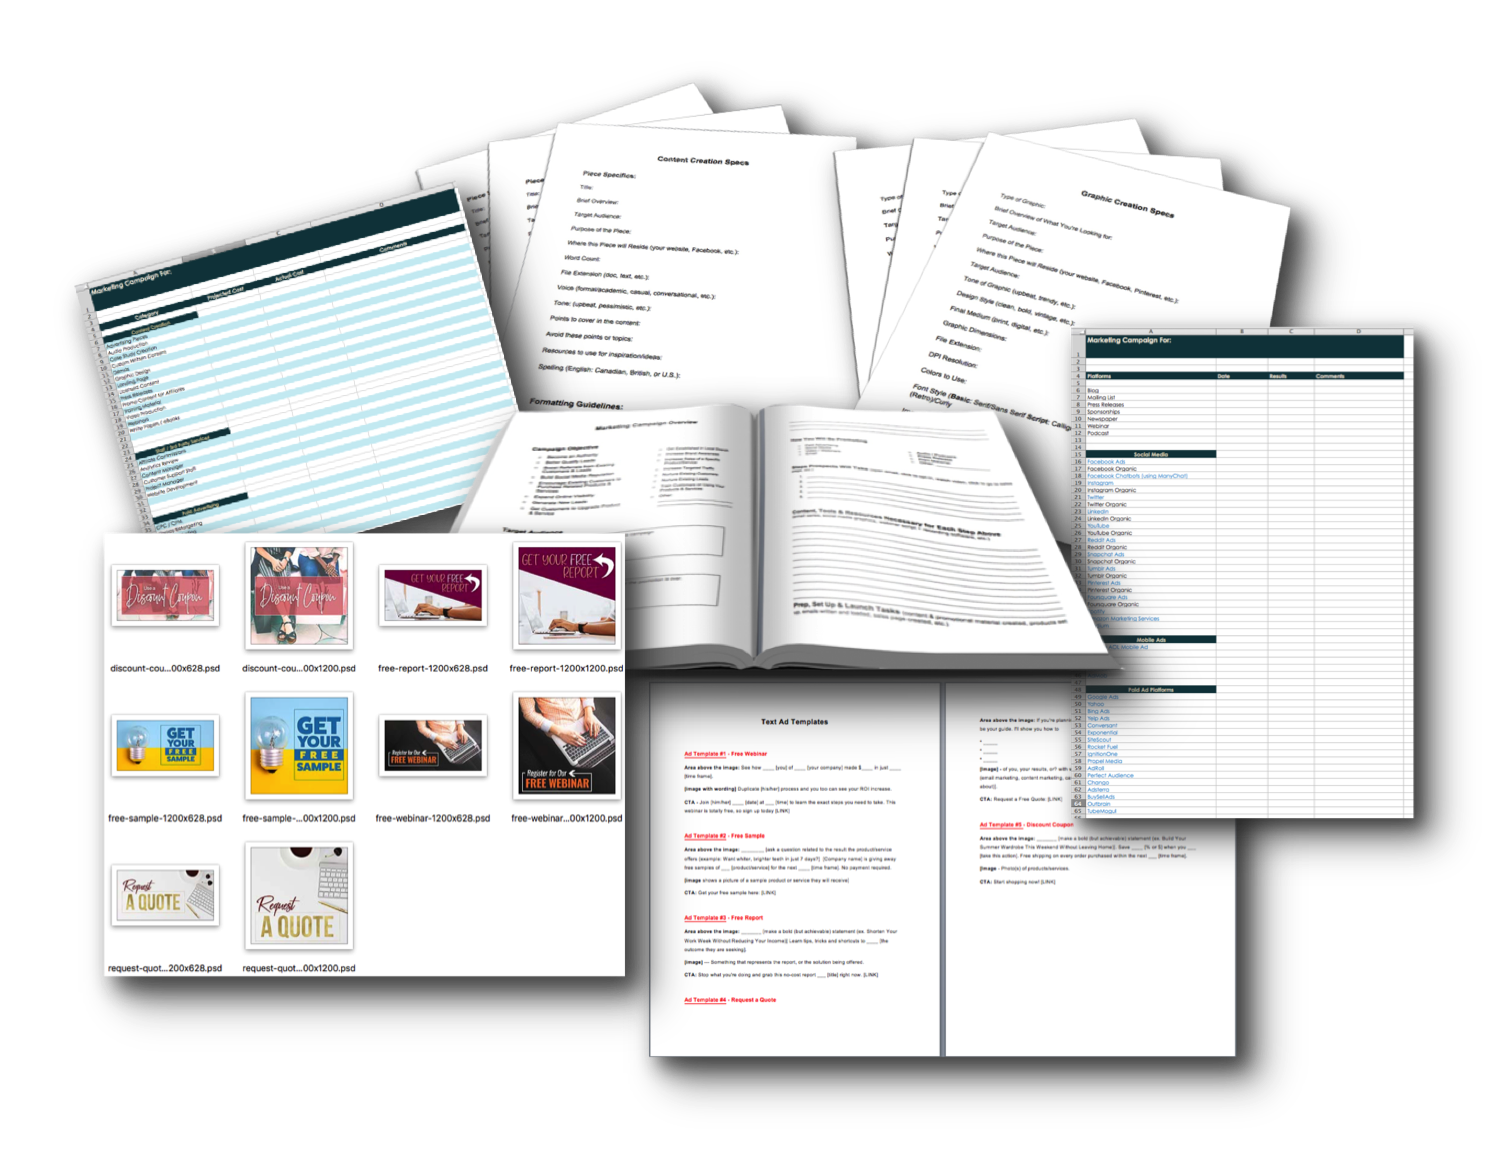 Marketing Campaign Project Management Templates